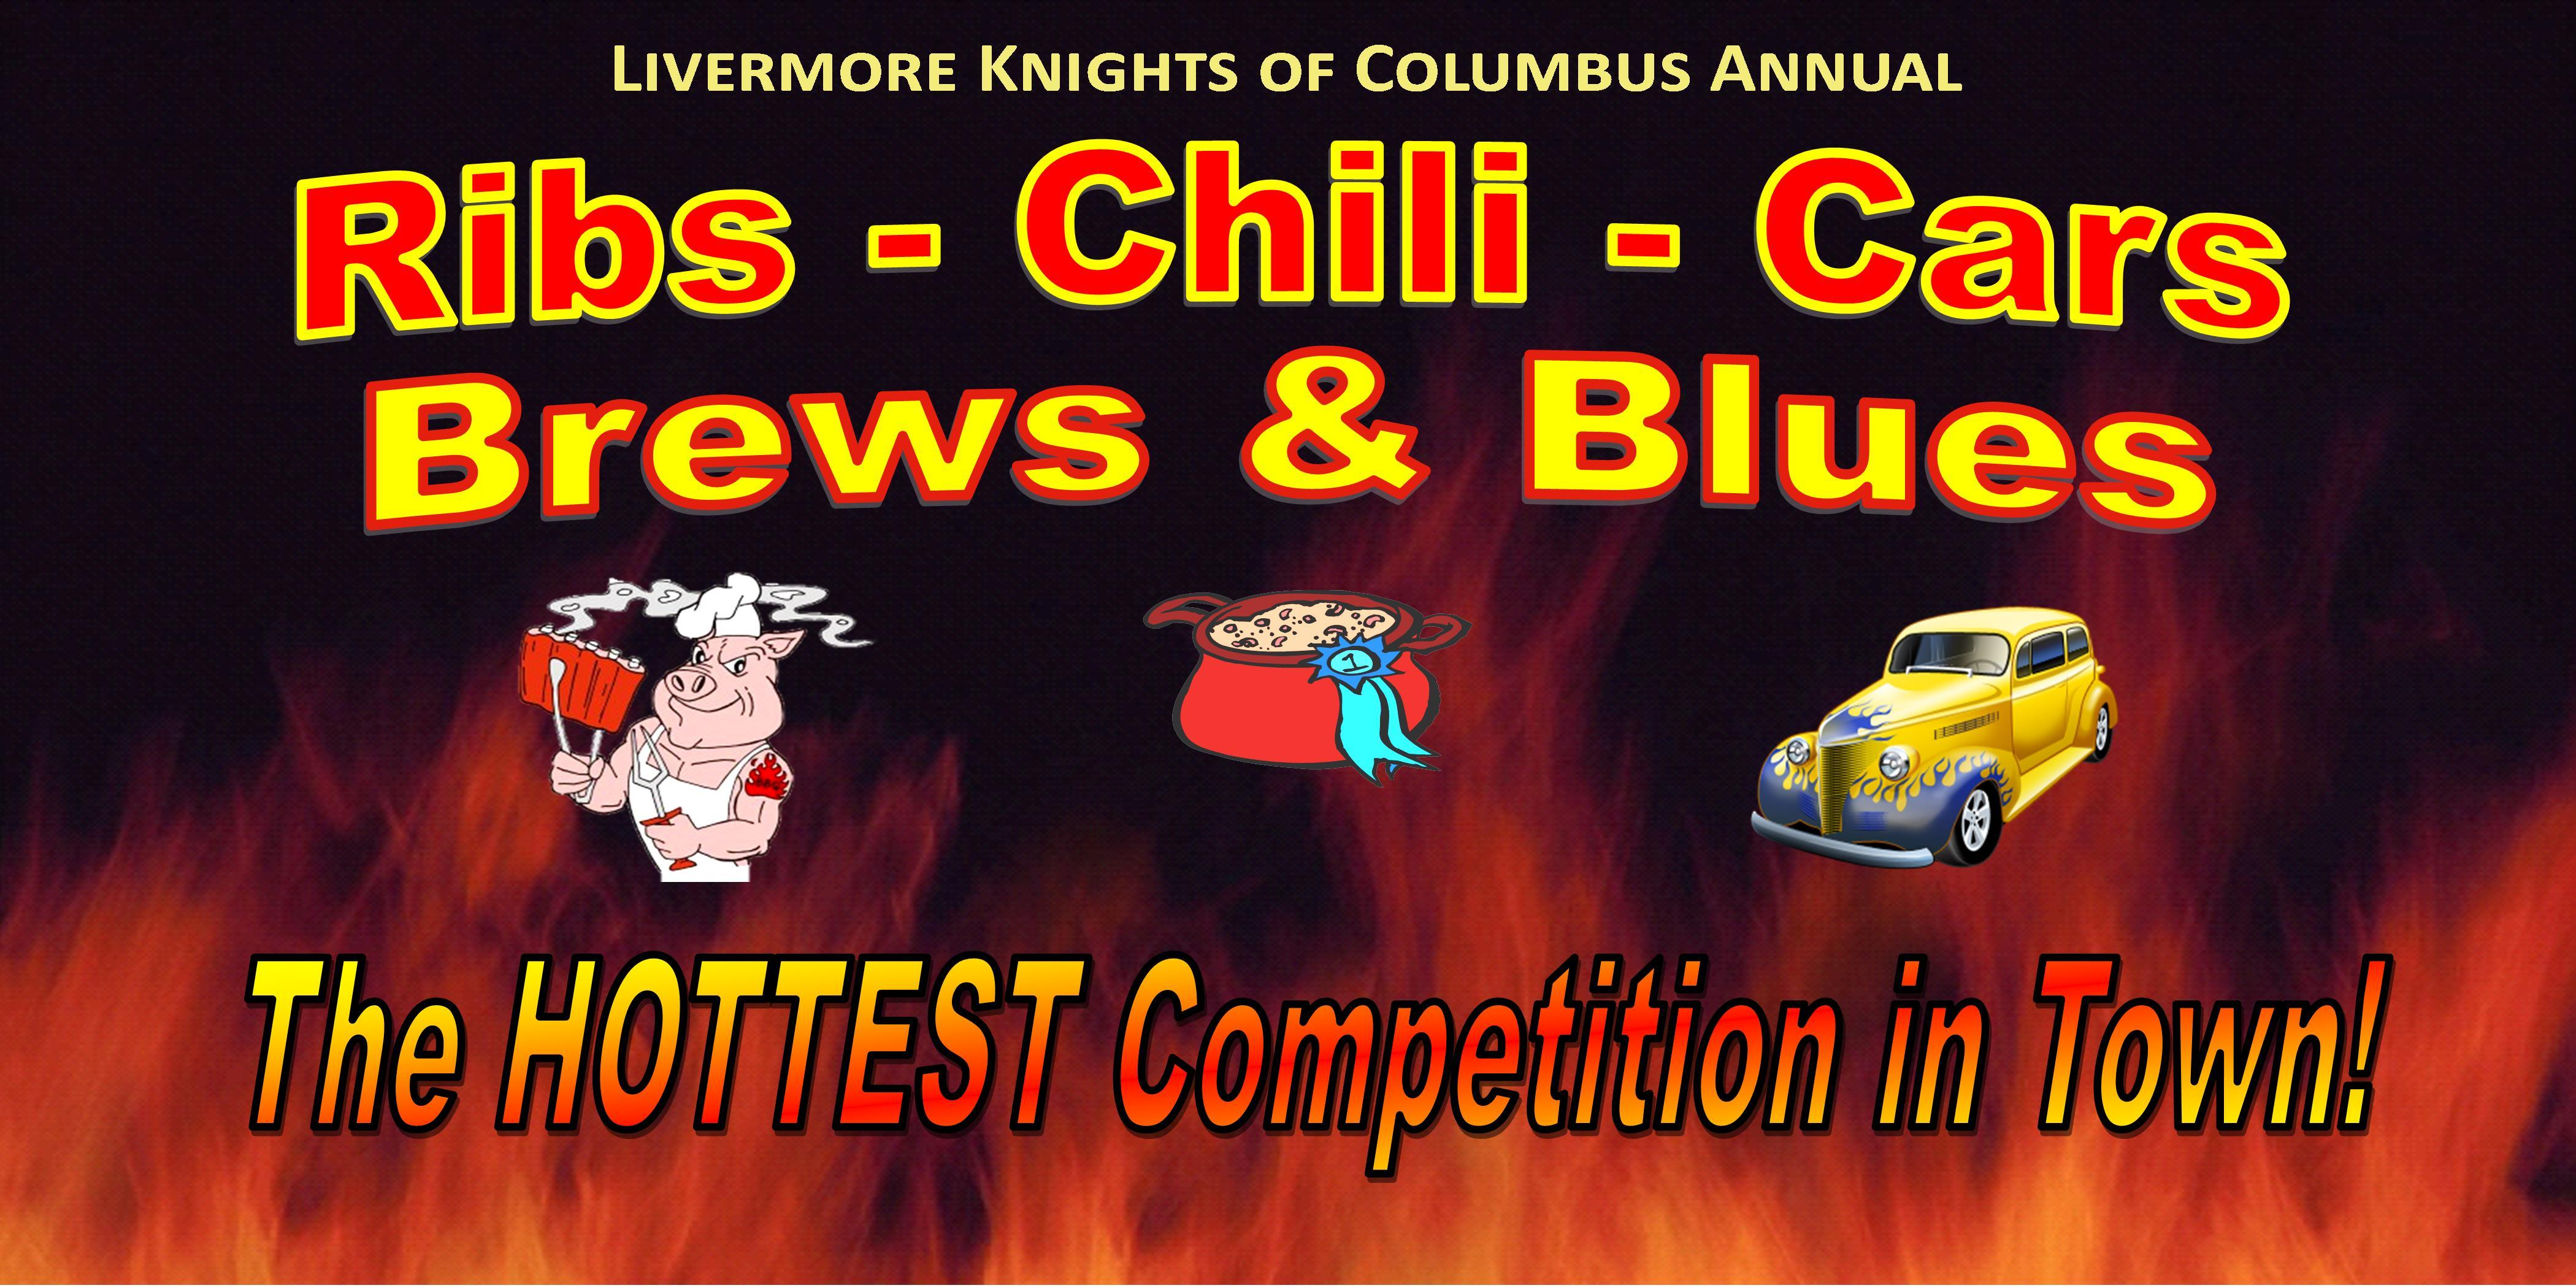 Livermore Knights of Columbus `Ribs, Chili, Cars, Brews & Blues` Charity Event 2017